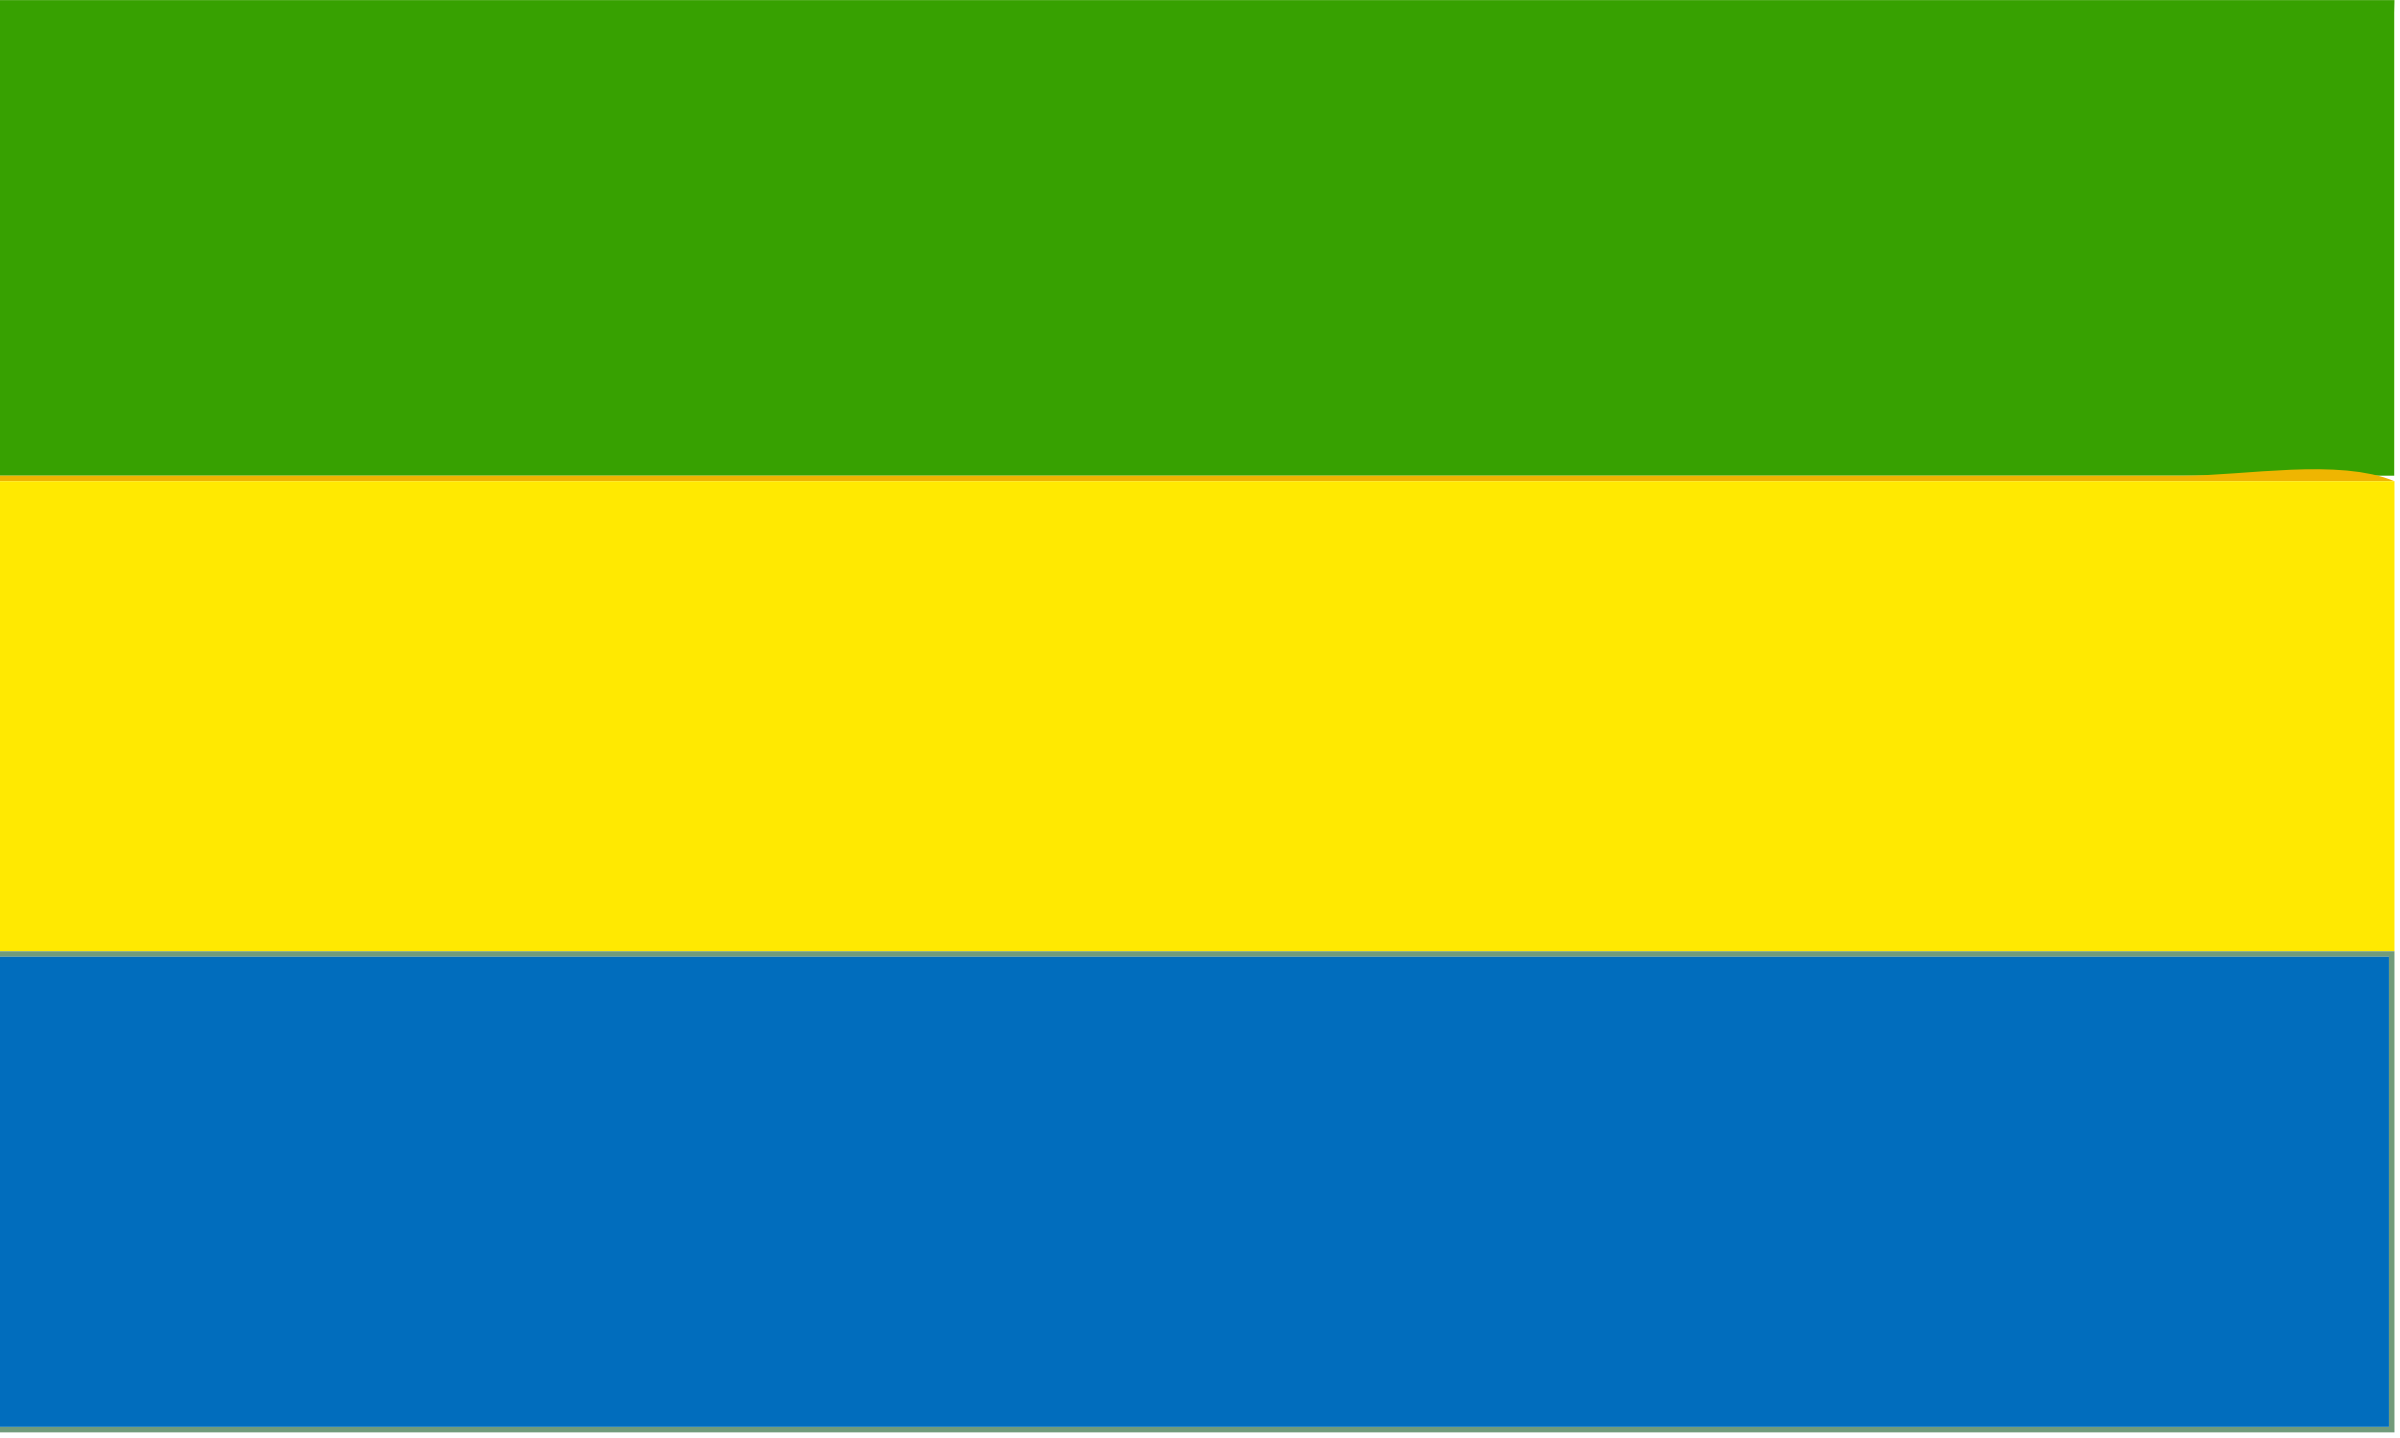 Flag of Gabon by Joesph